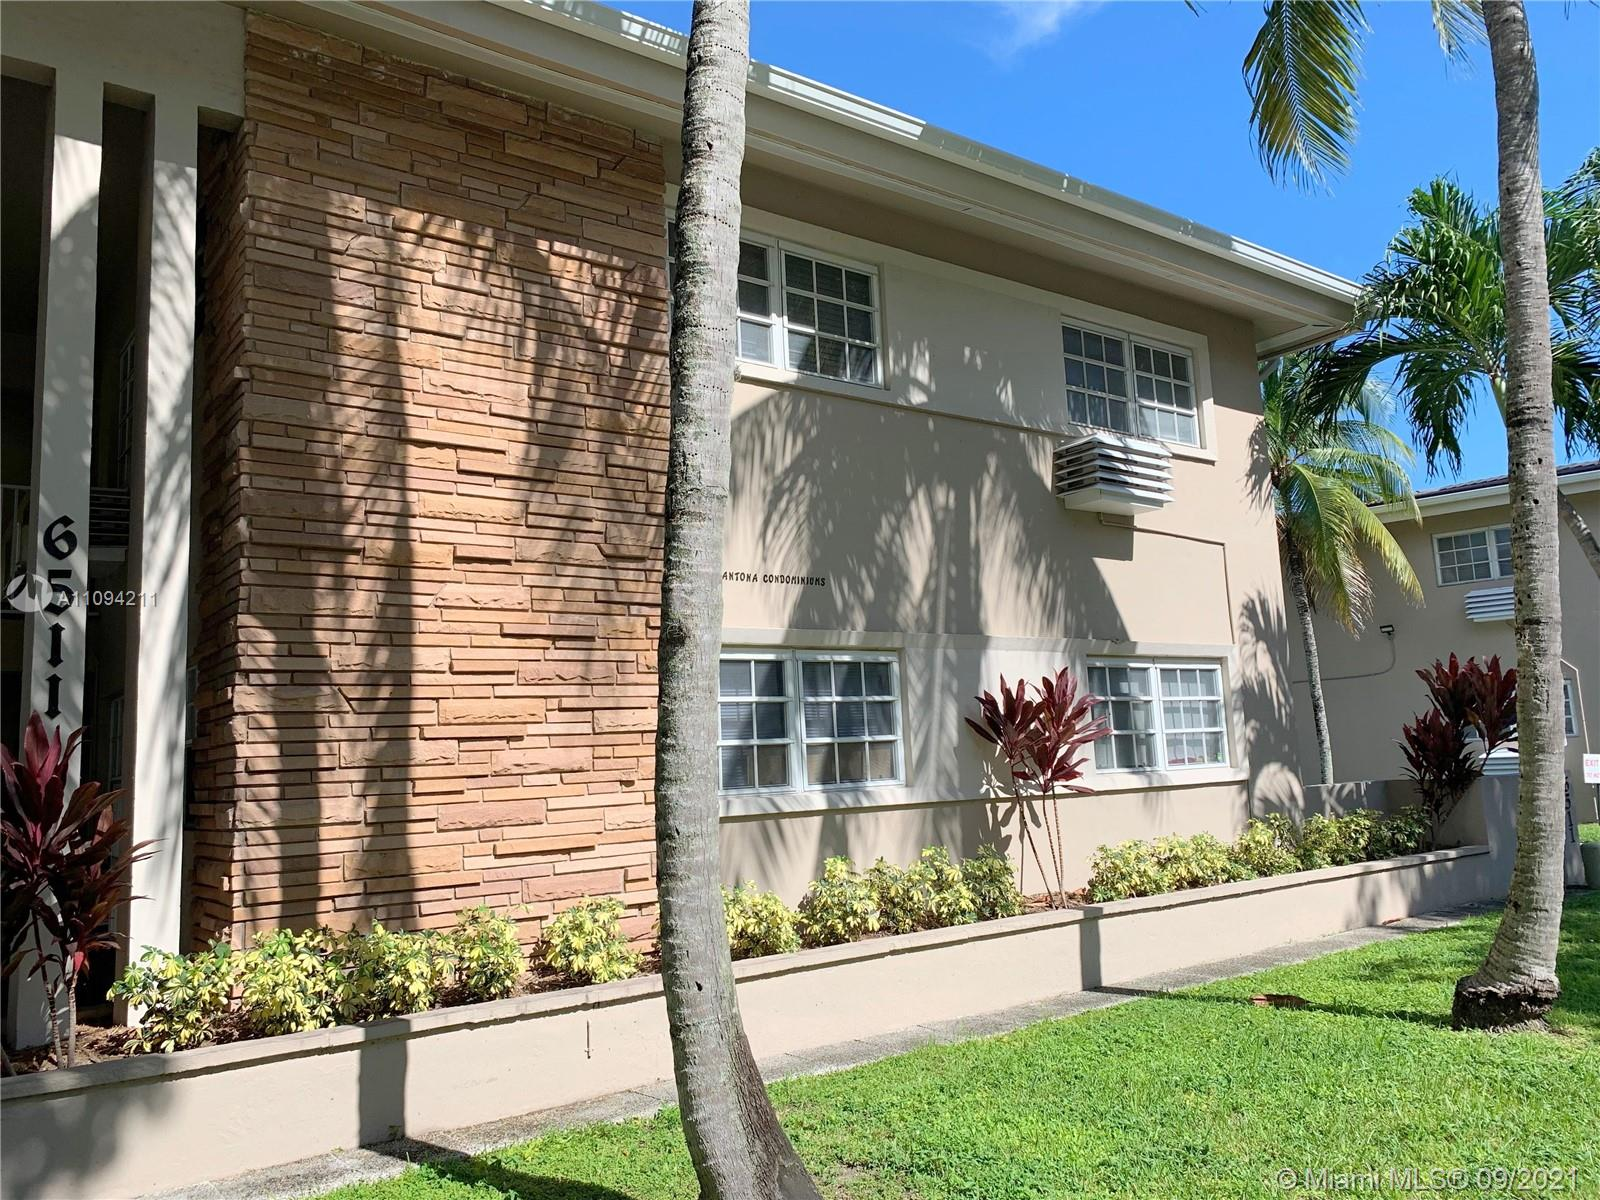 Condo for sale in Coral Gables! 1 bedroom/1 bath unit on the first floor.  Tiled floor, updated kitchen and bath. Walk to UM, Publix, Whole Foods, downtown South Miami, and much more!! Great investment opportunity or place to call home!! Call me for a showing! Best priced in the area!